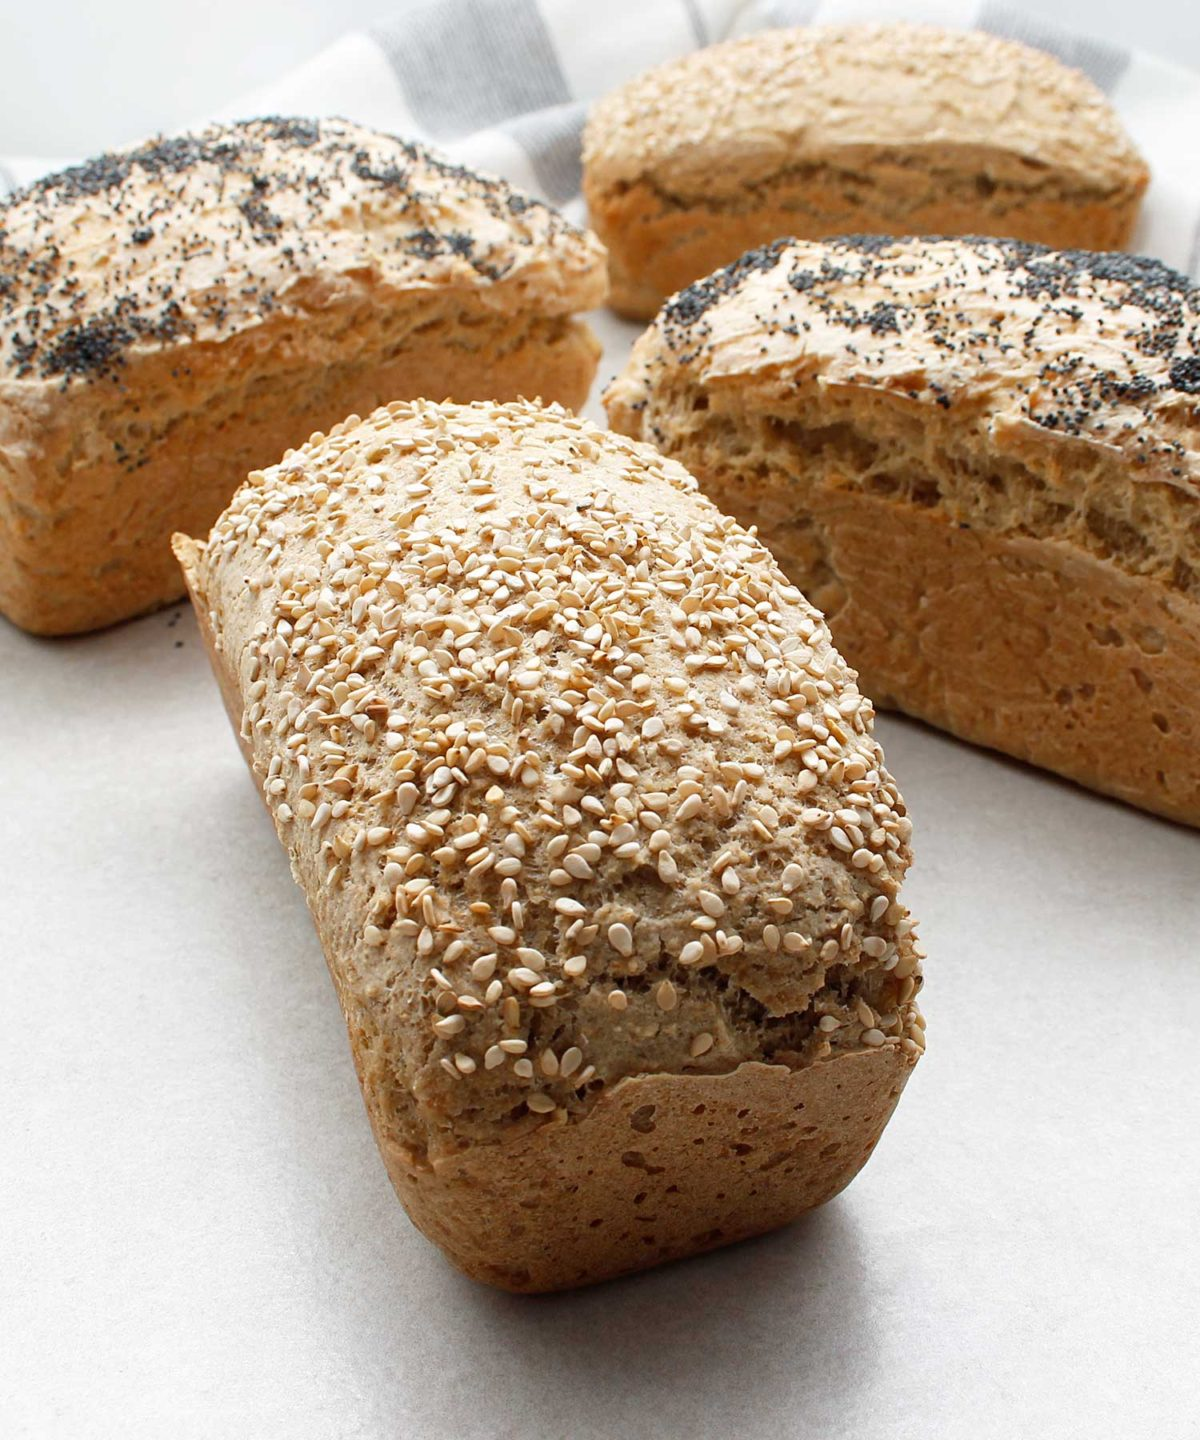 Beautiful mini loaves of yeast-free, gluten-free, vegan bread. Topped with sesame seeds and poppy seeds.